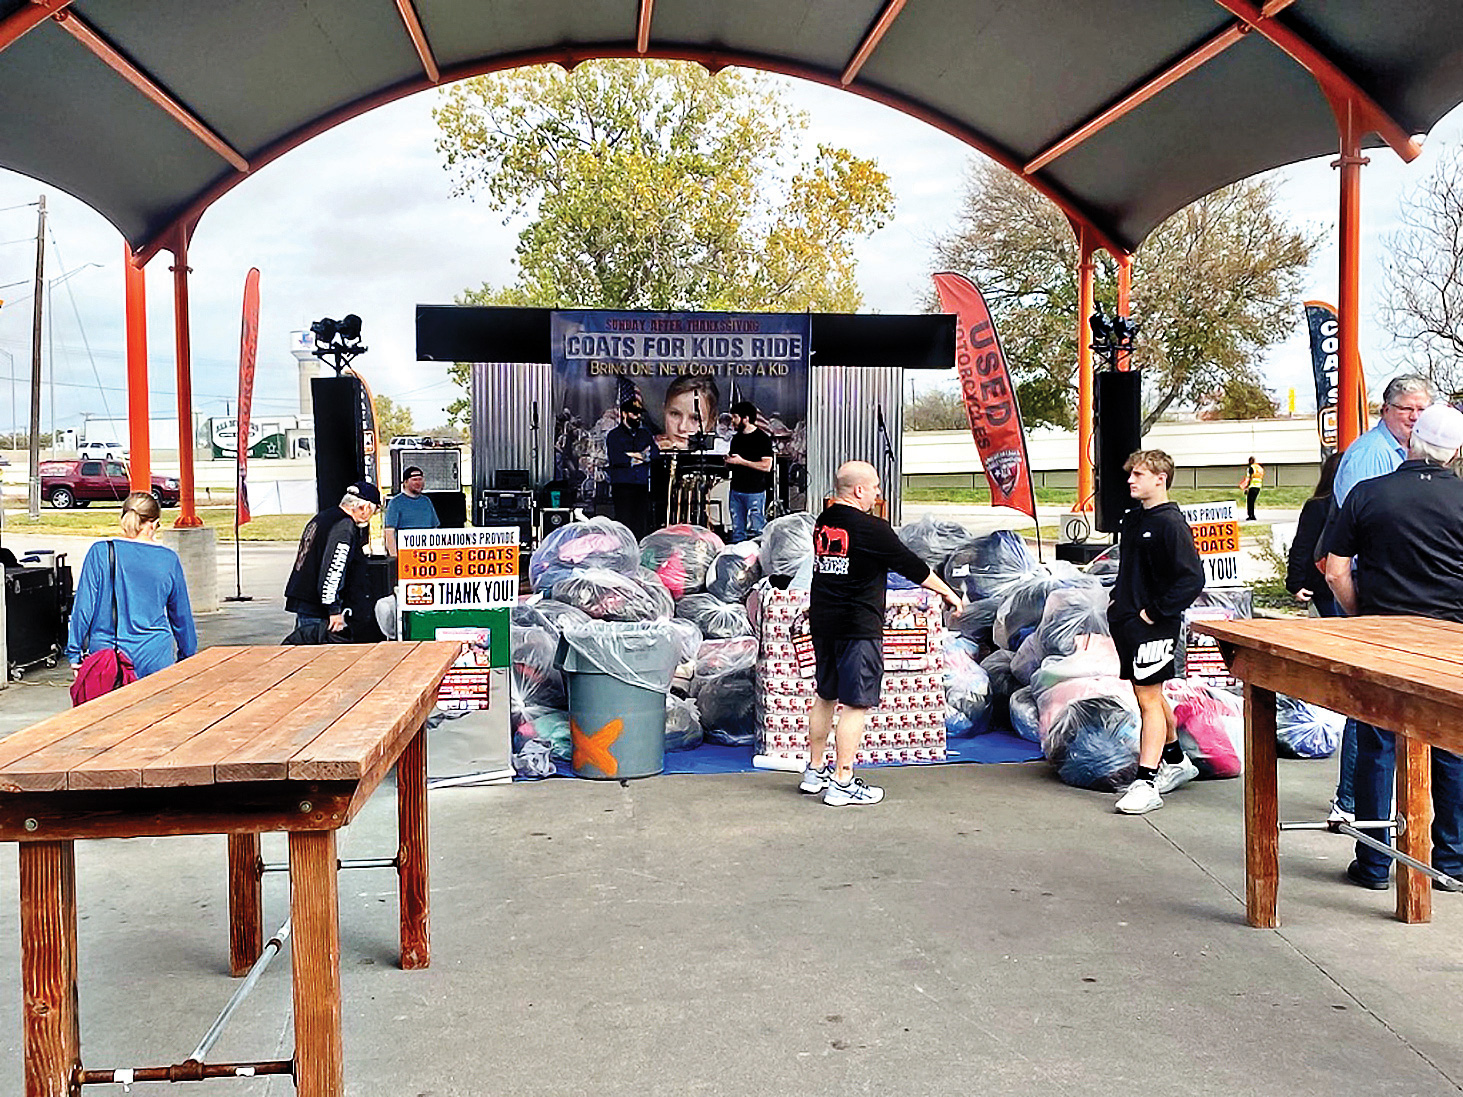 Gathering coats at the event